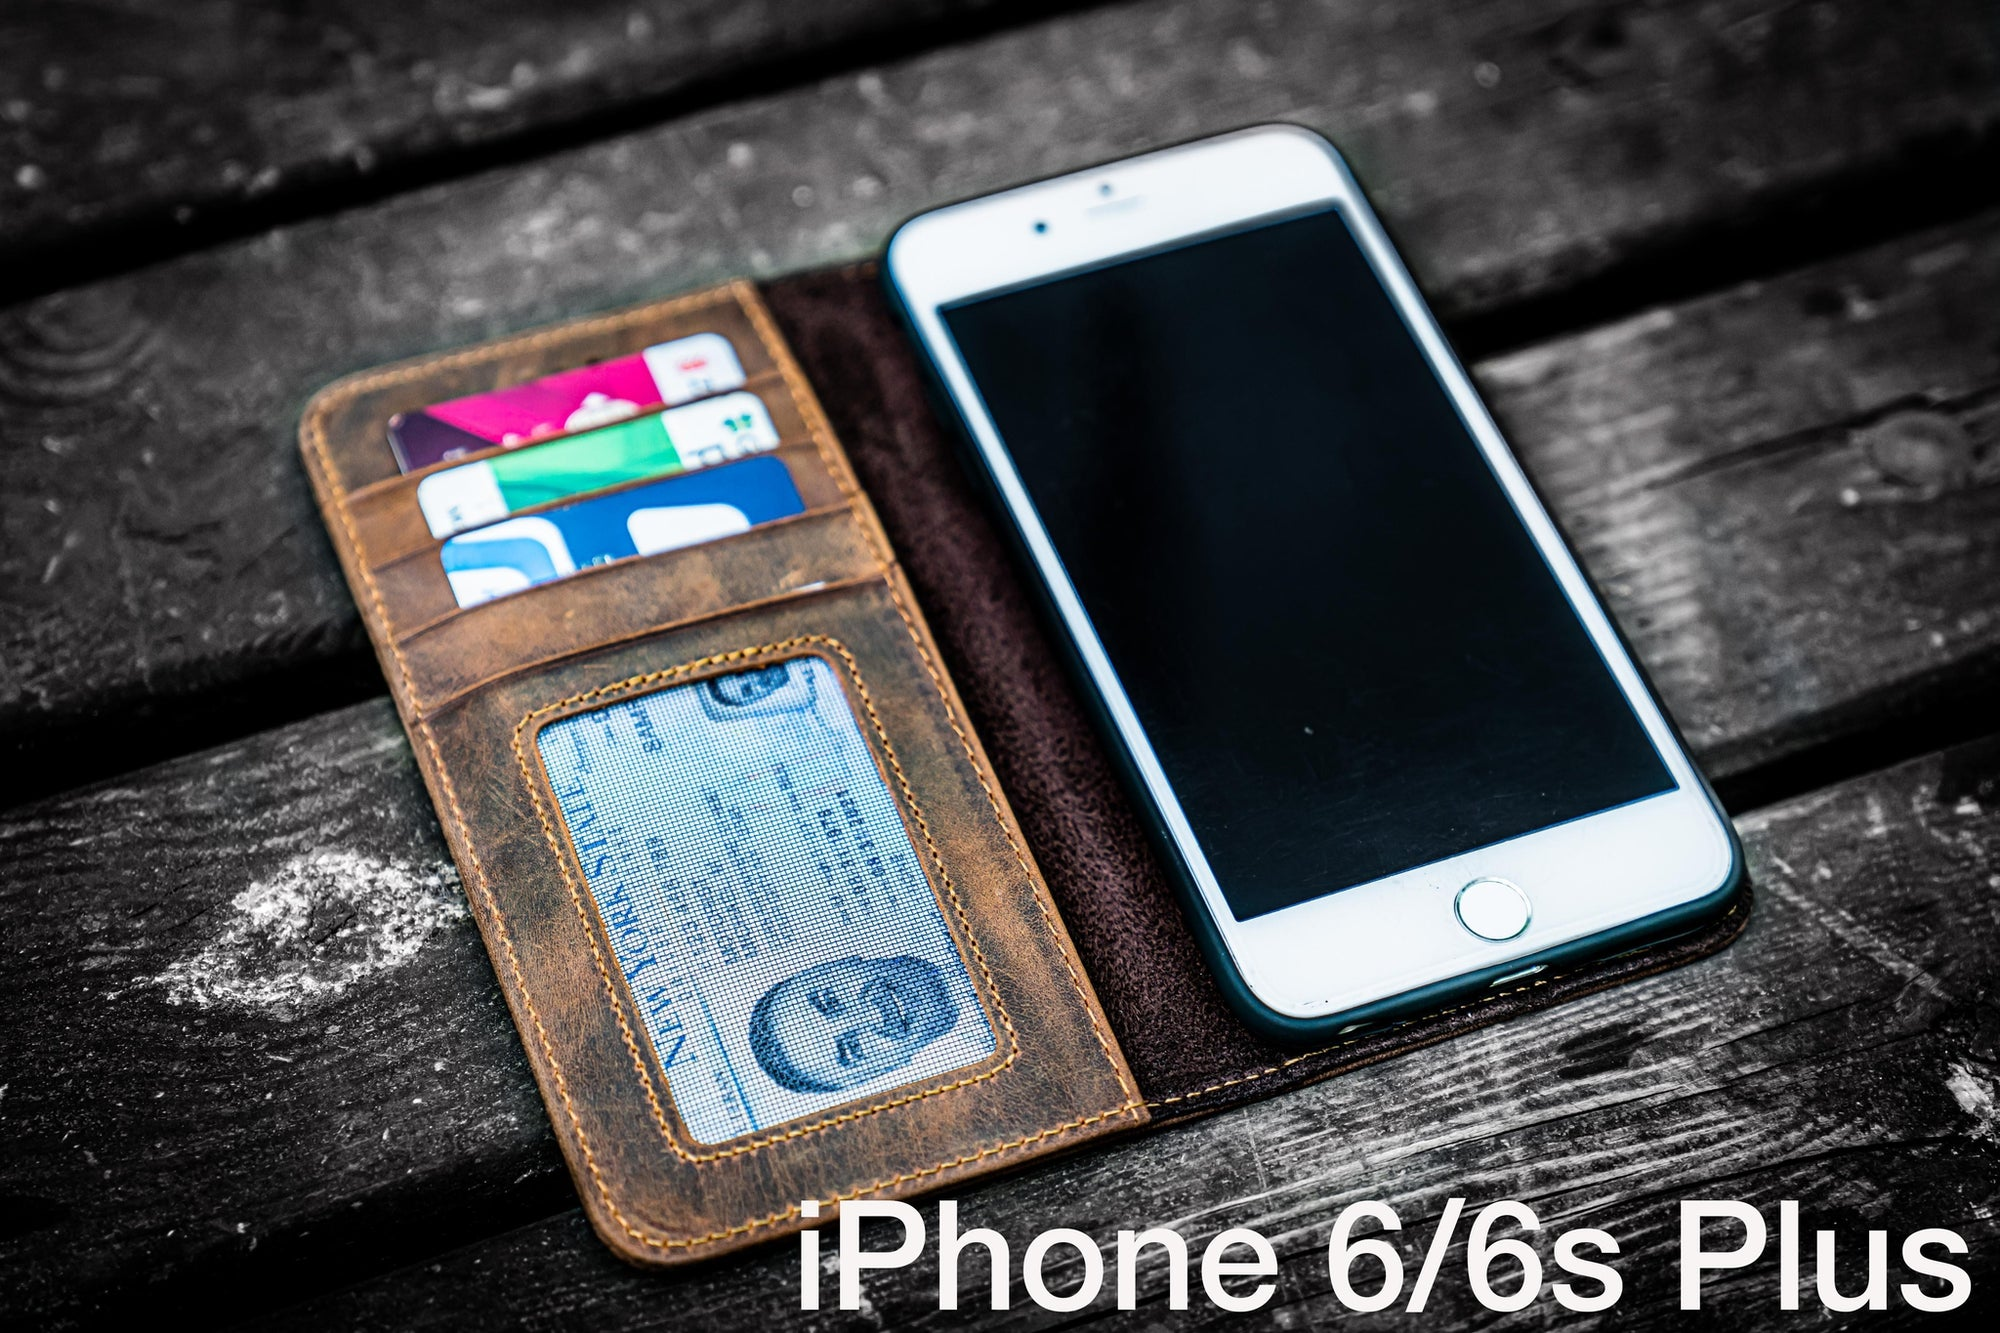 iPhone 6/6s Plus Leather Wallet Case - No.01-Galen Leather